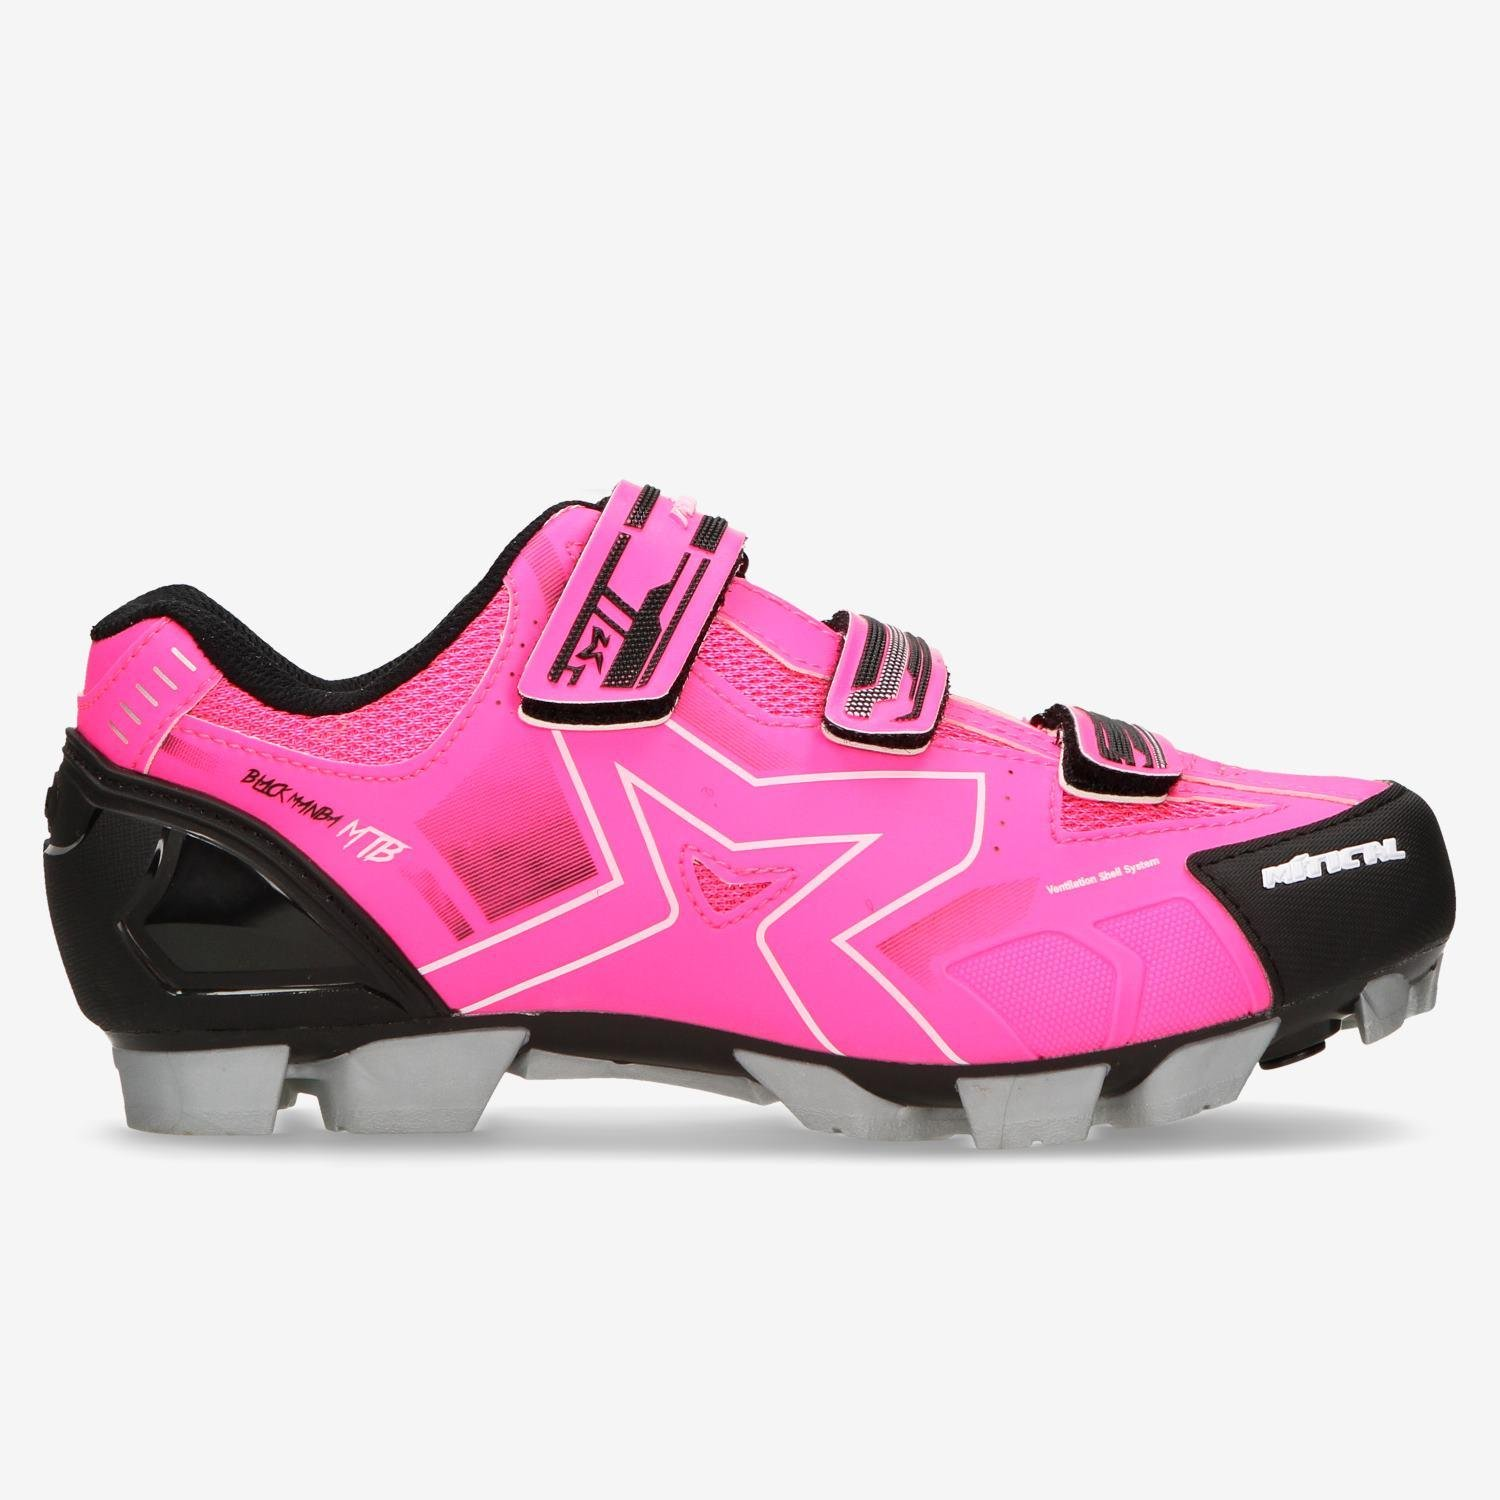 MITICAL Zapatillas Ciclismo (Talla: 41): Amazon.es: Zapatos y complementos